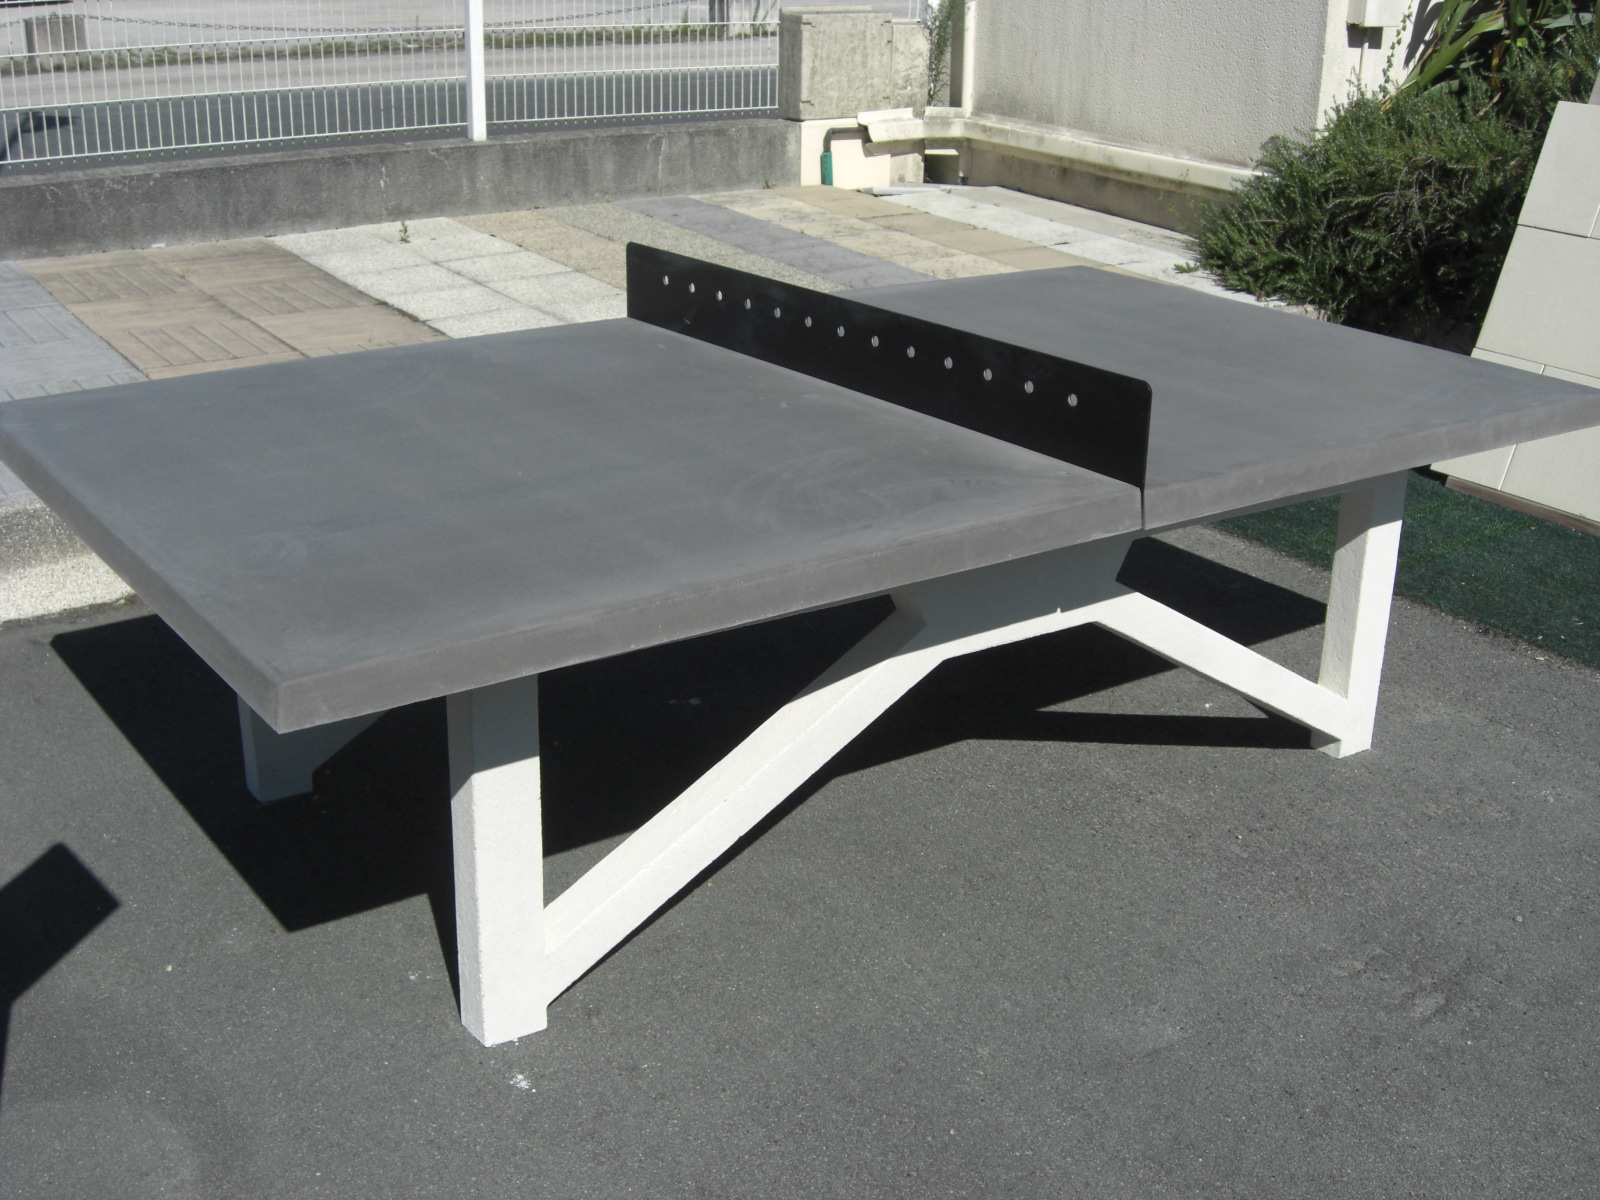 TABLE PING PONG CONTEMPORAINE